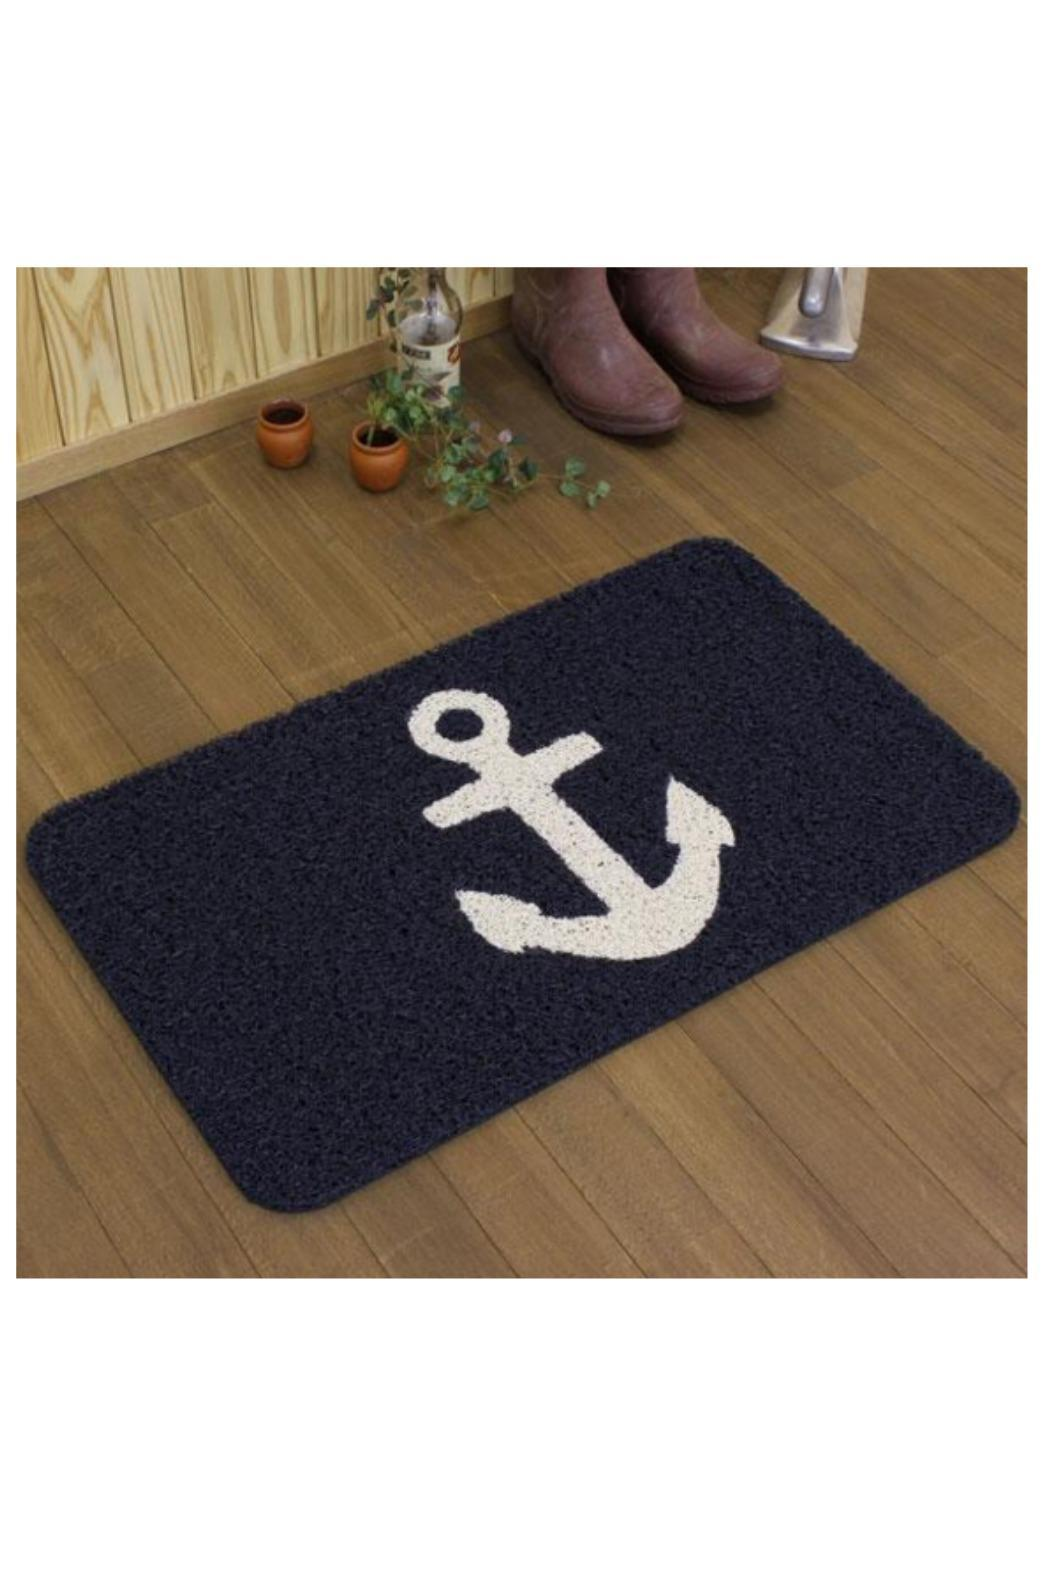 Kikkerland Anchor Doormat From Toronto By Neat Shoptiques